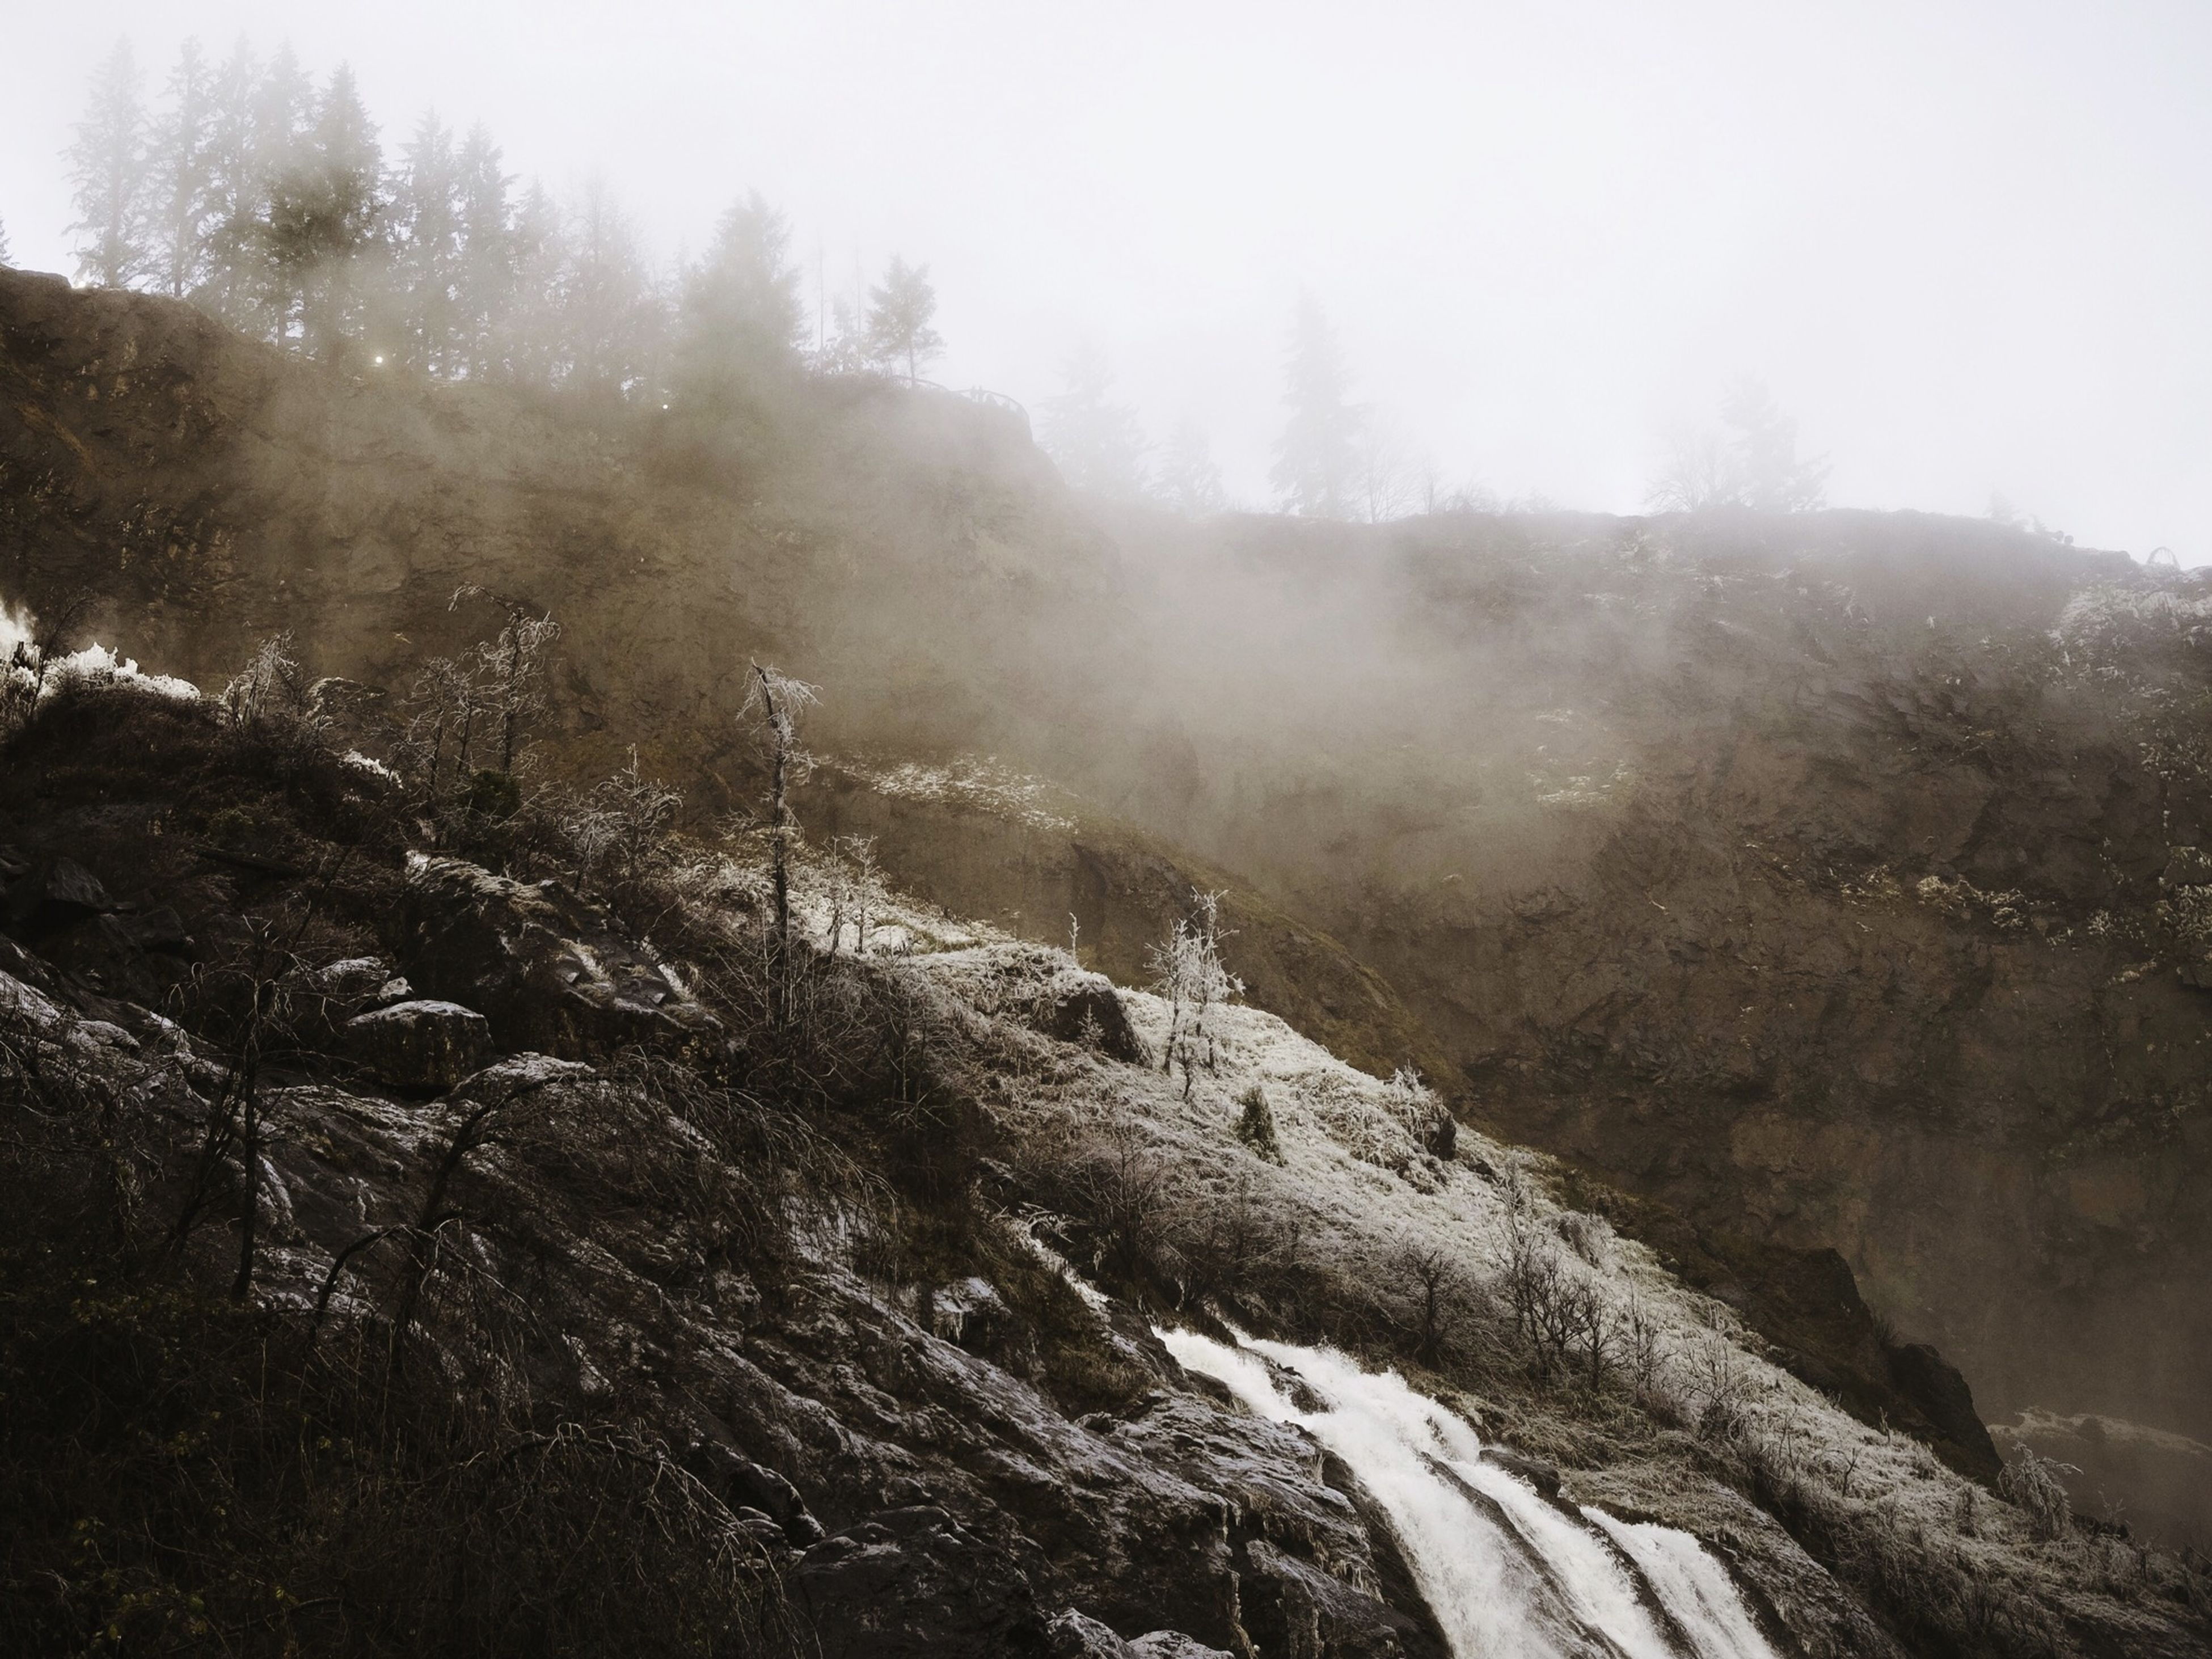 fog, scenics, tranquility, tranquil scene, beauty in nature, tree, nature, mountain, foggy, non-urban scene, landscape, weather, rock - object, forest, idyllic, winter, sky, remote, day